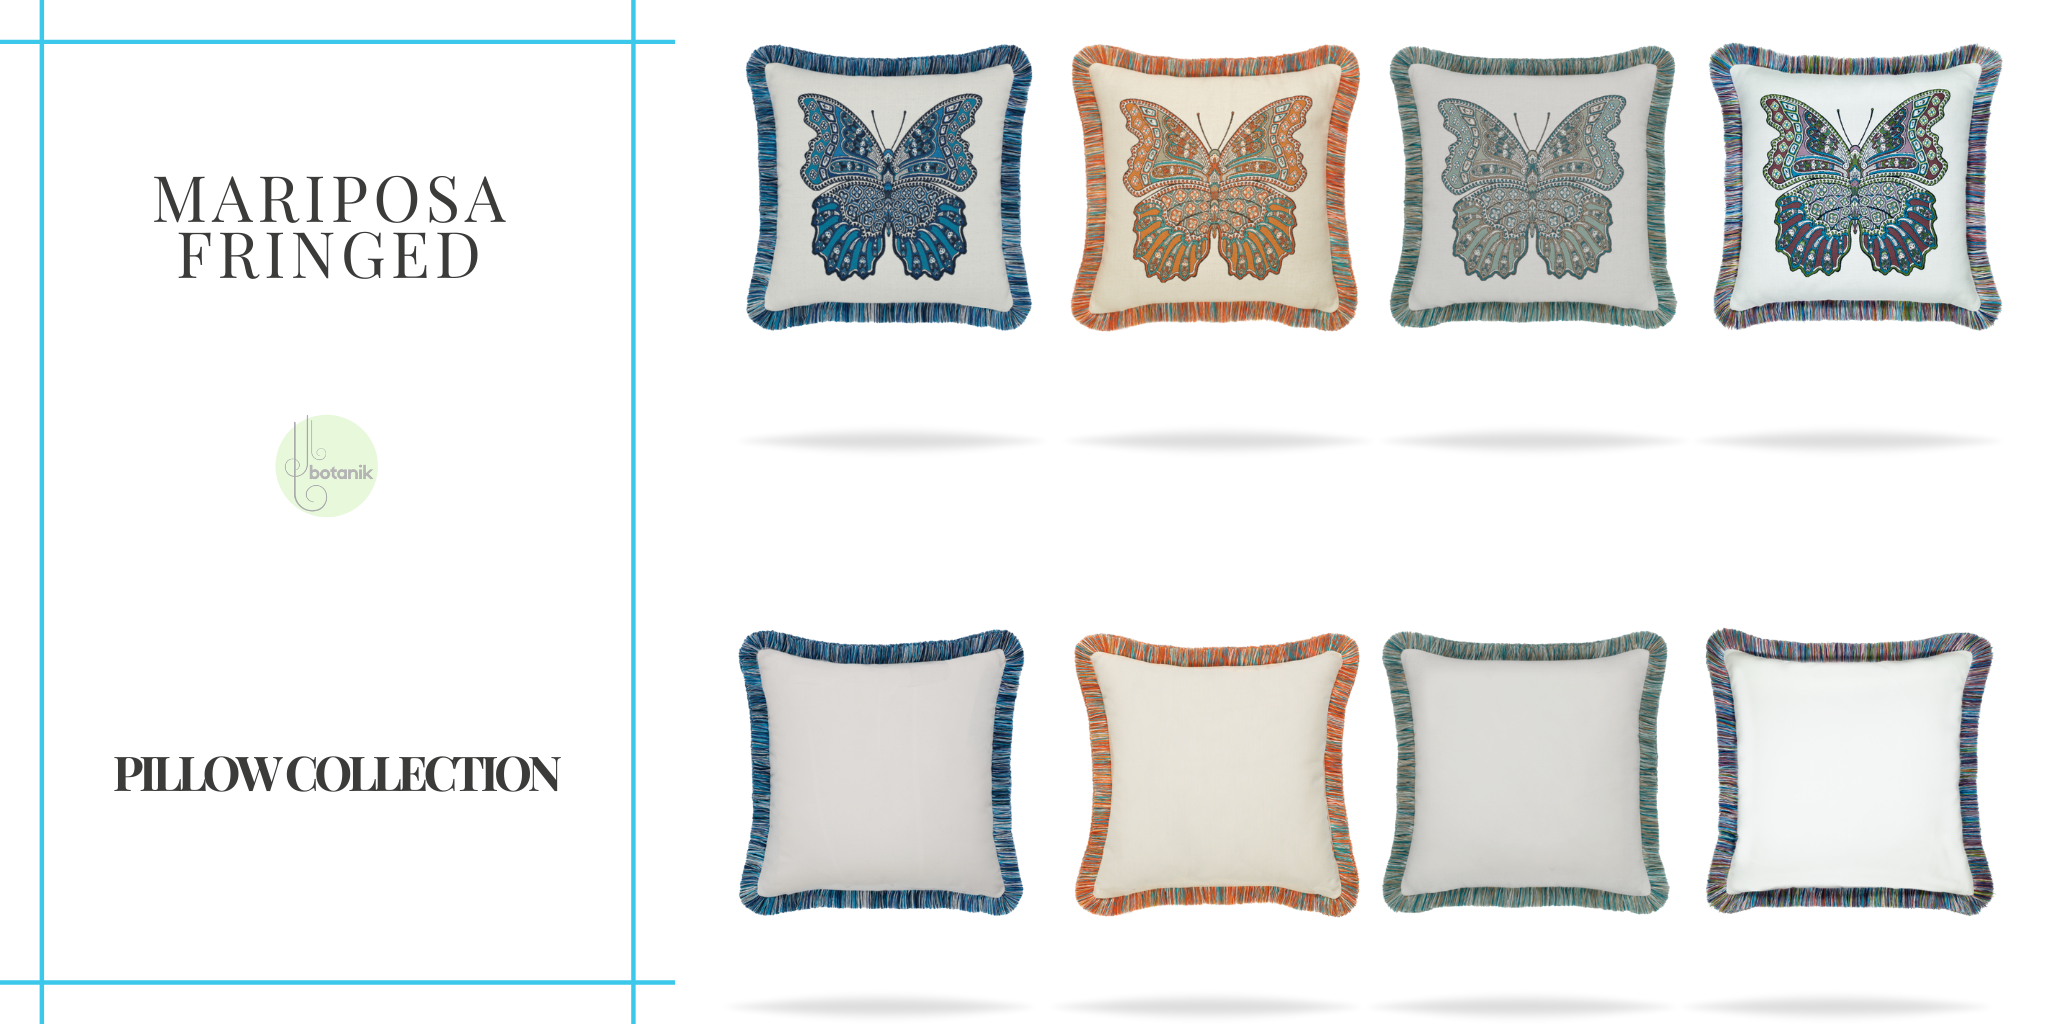 mariposa-fringed-pillow-collection